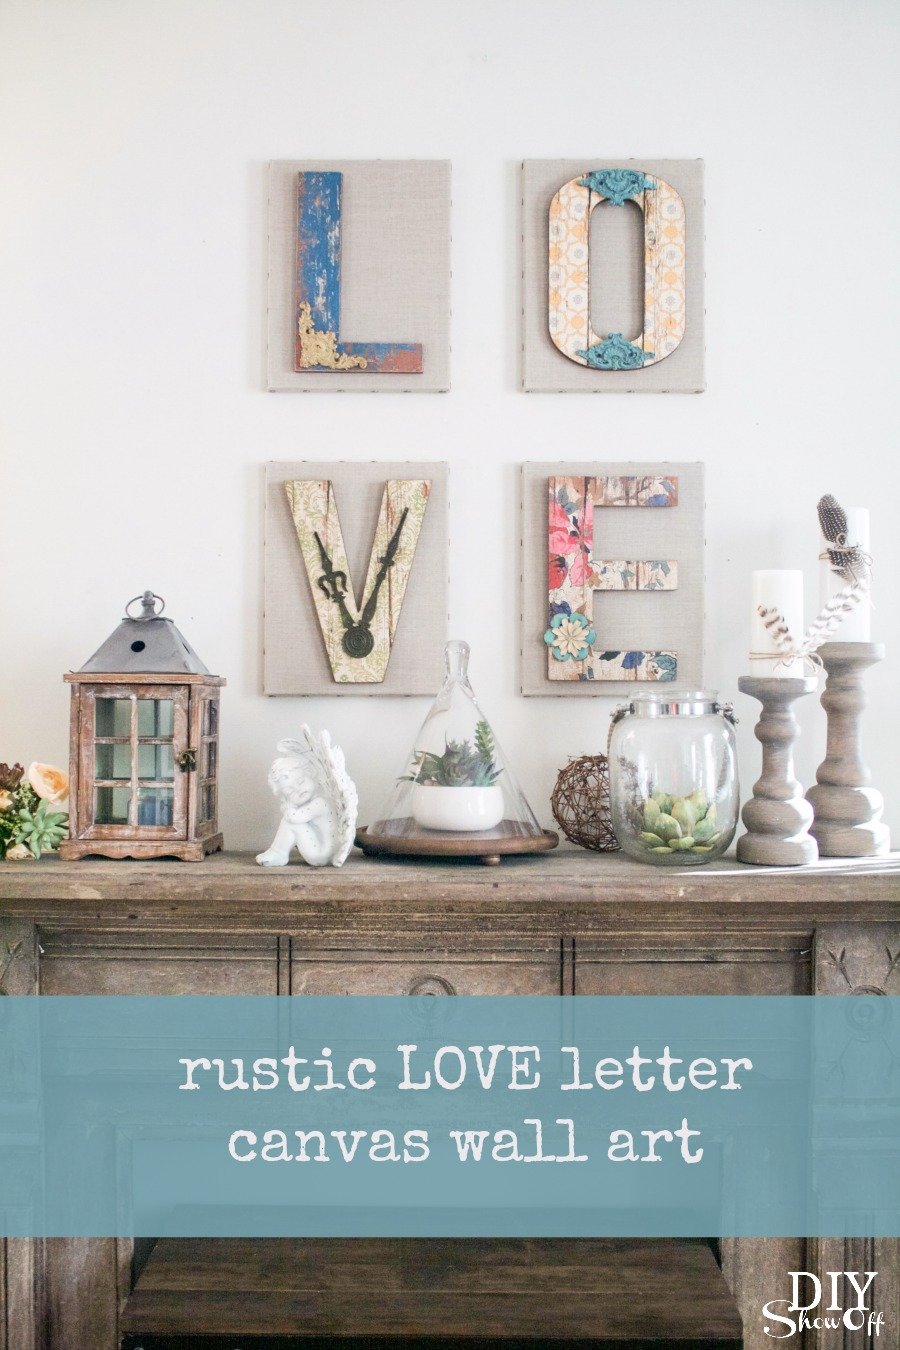 cute chippy rustic DIY LOVE letter wall